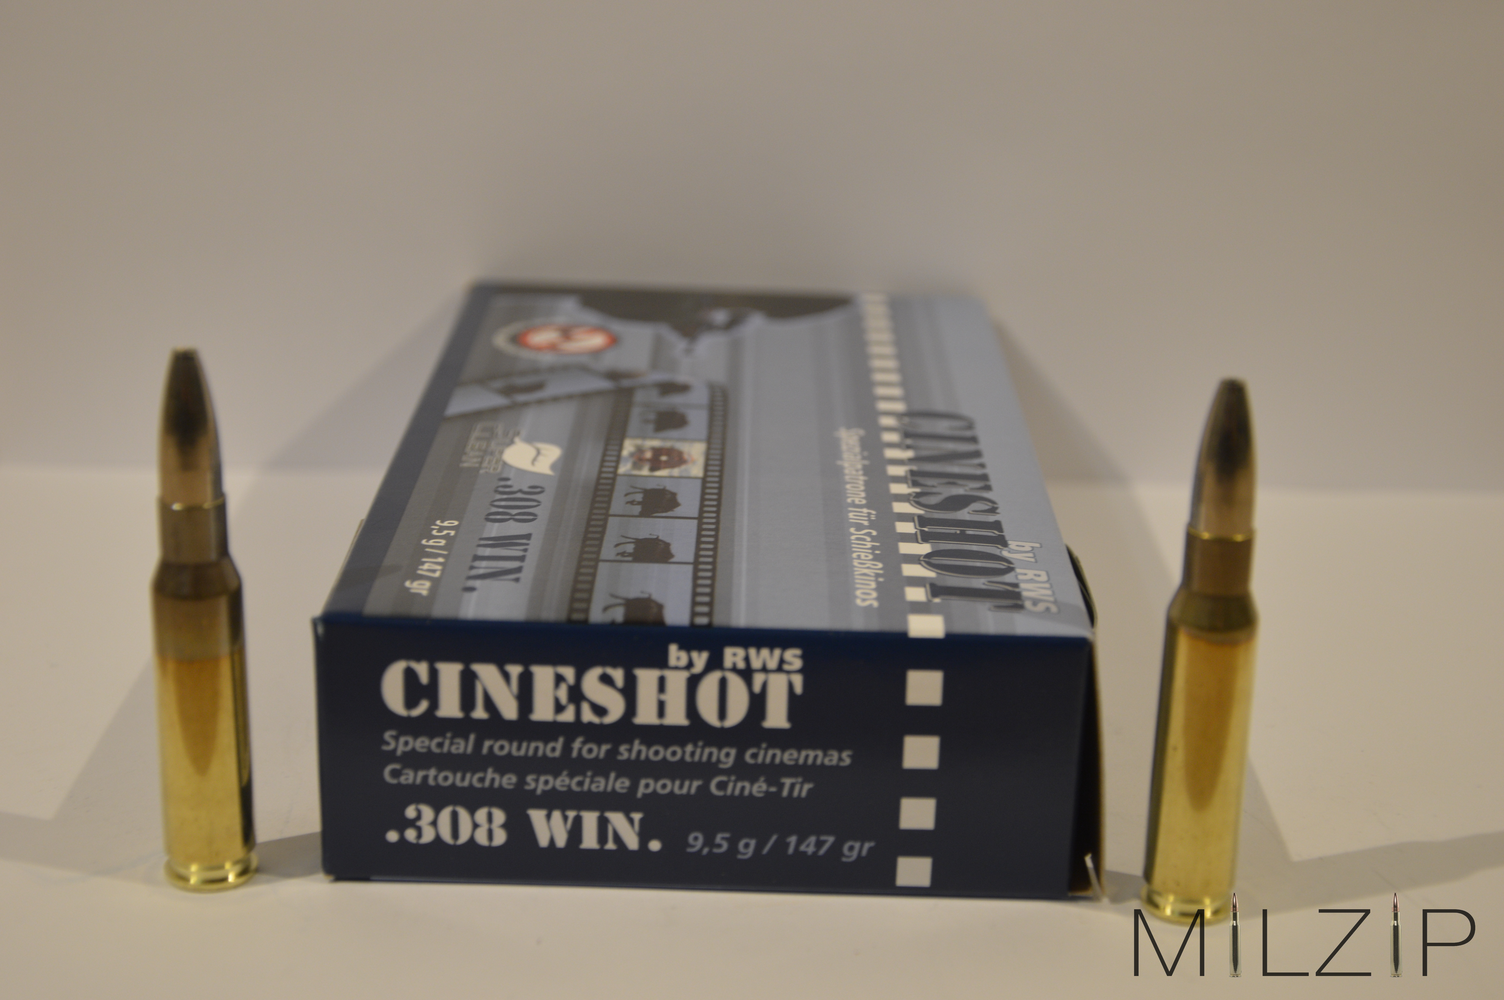 RWS Cineshot .308Win 9,5g/147grs.